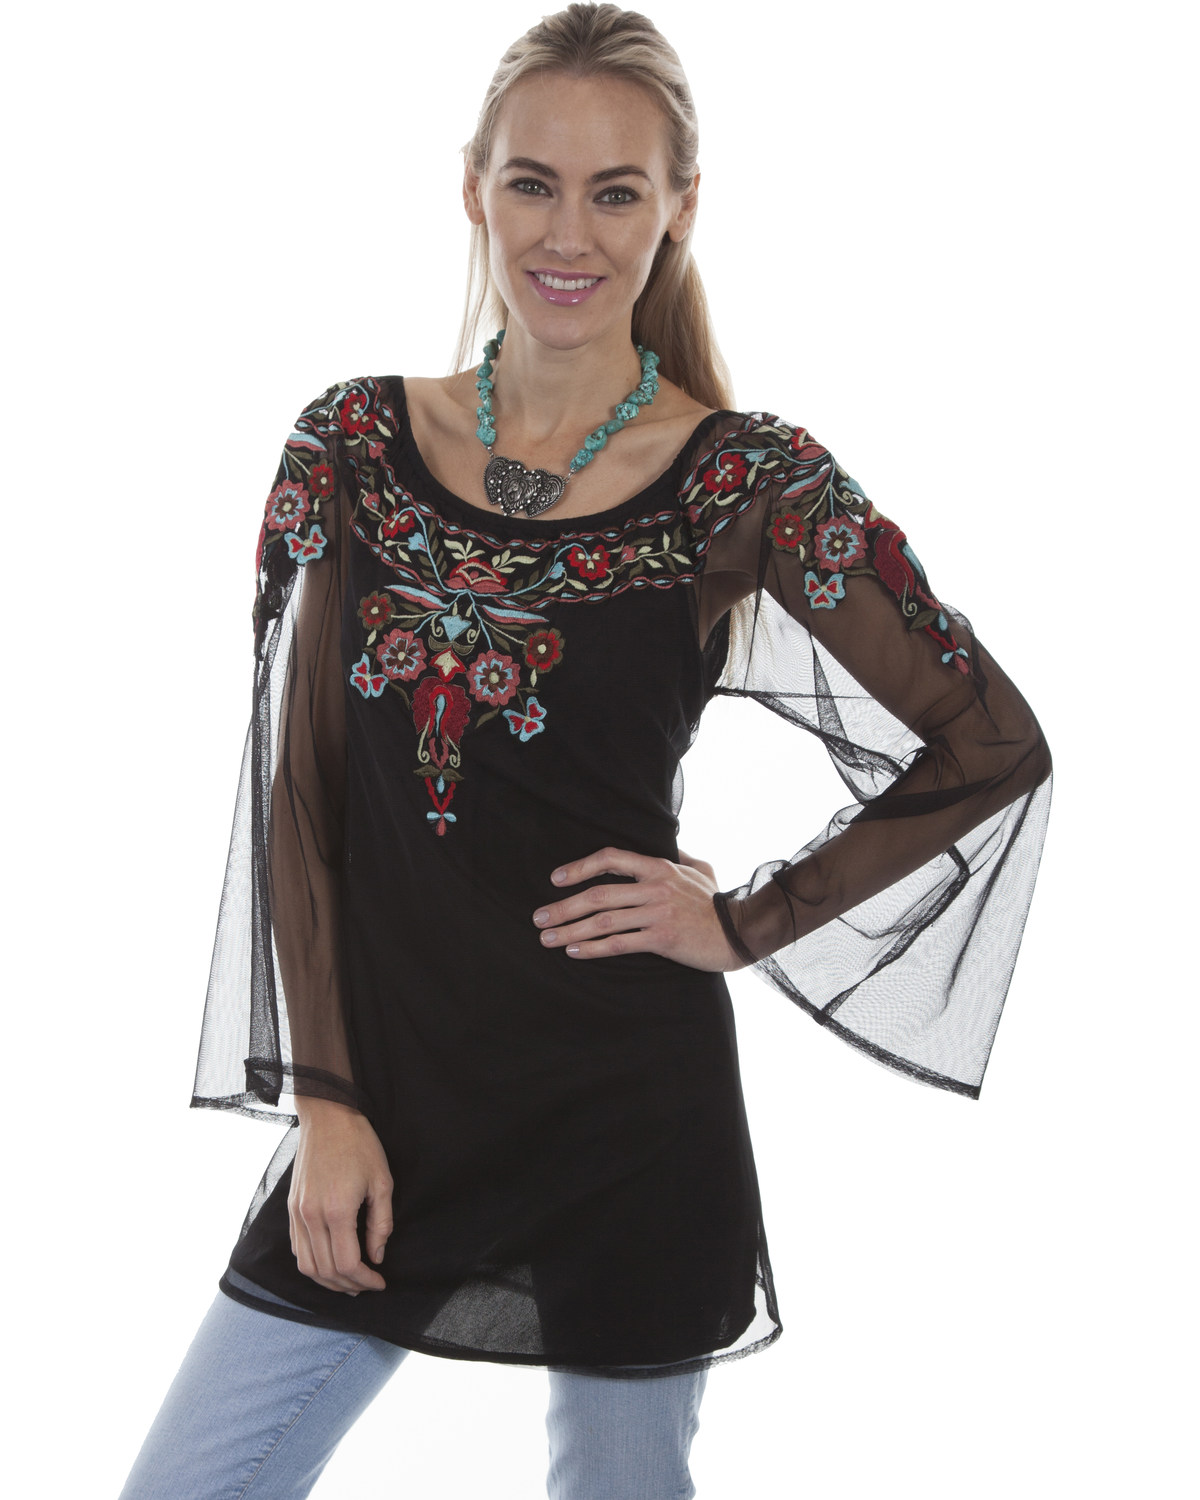 09c45d9929e Honey Creek by Scully Women s Black Sheer Floral Embroidered Long Sleeve  Top